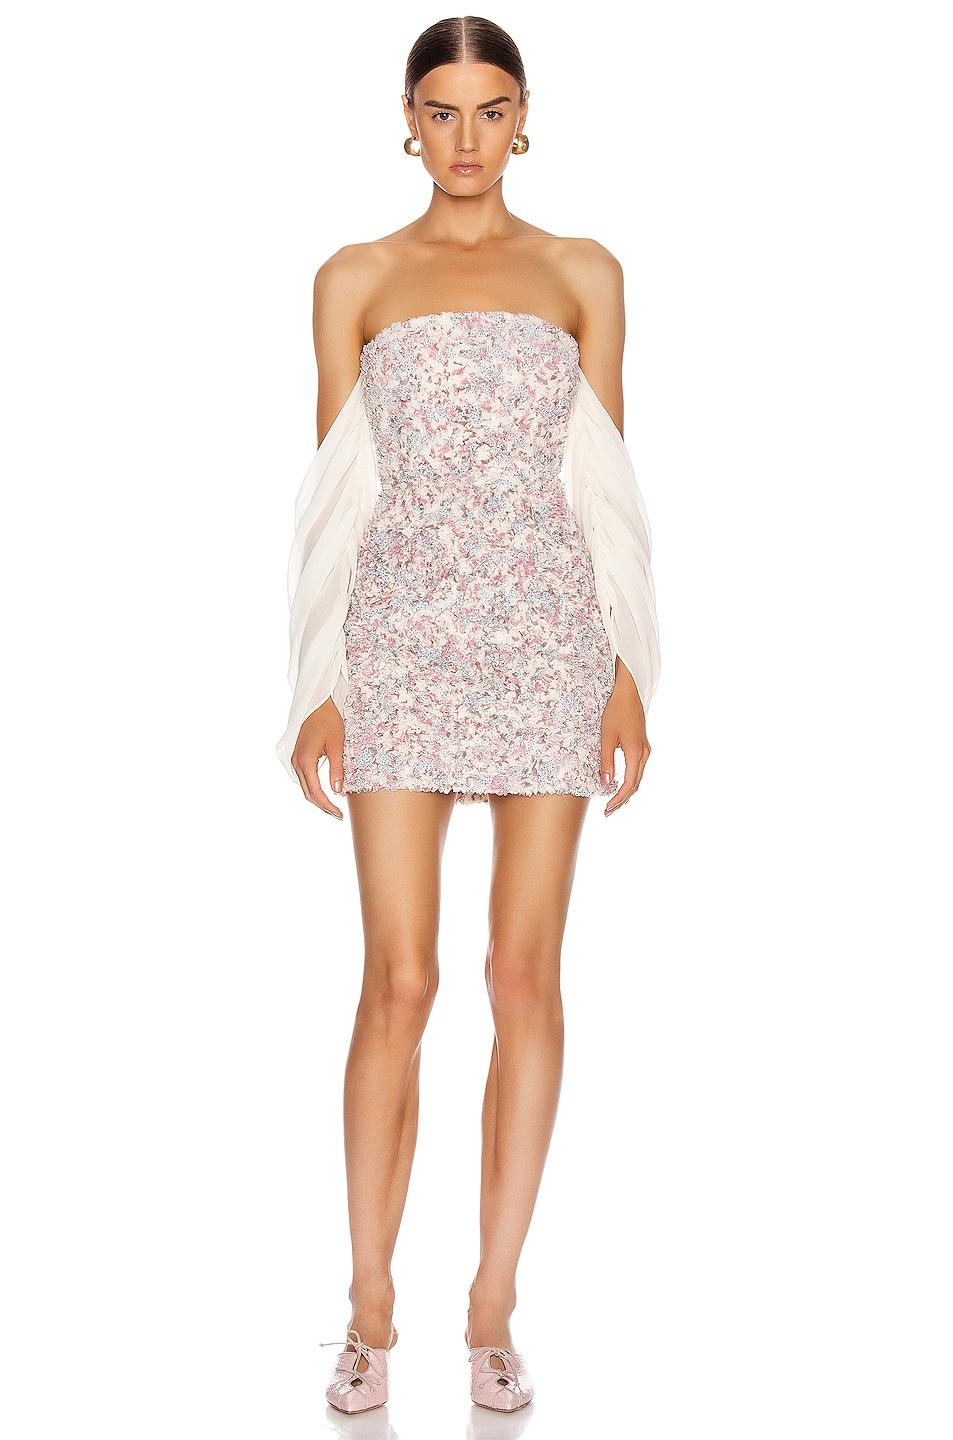 Image 1 of Atoir Chasing Highs Dress in Orchid Floral